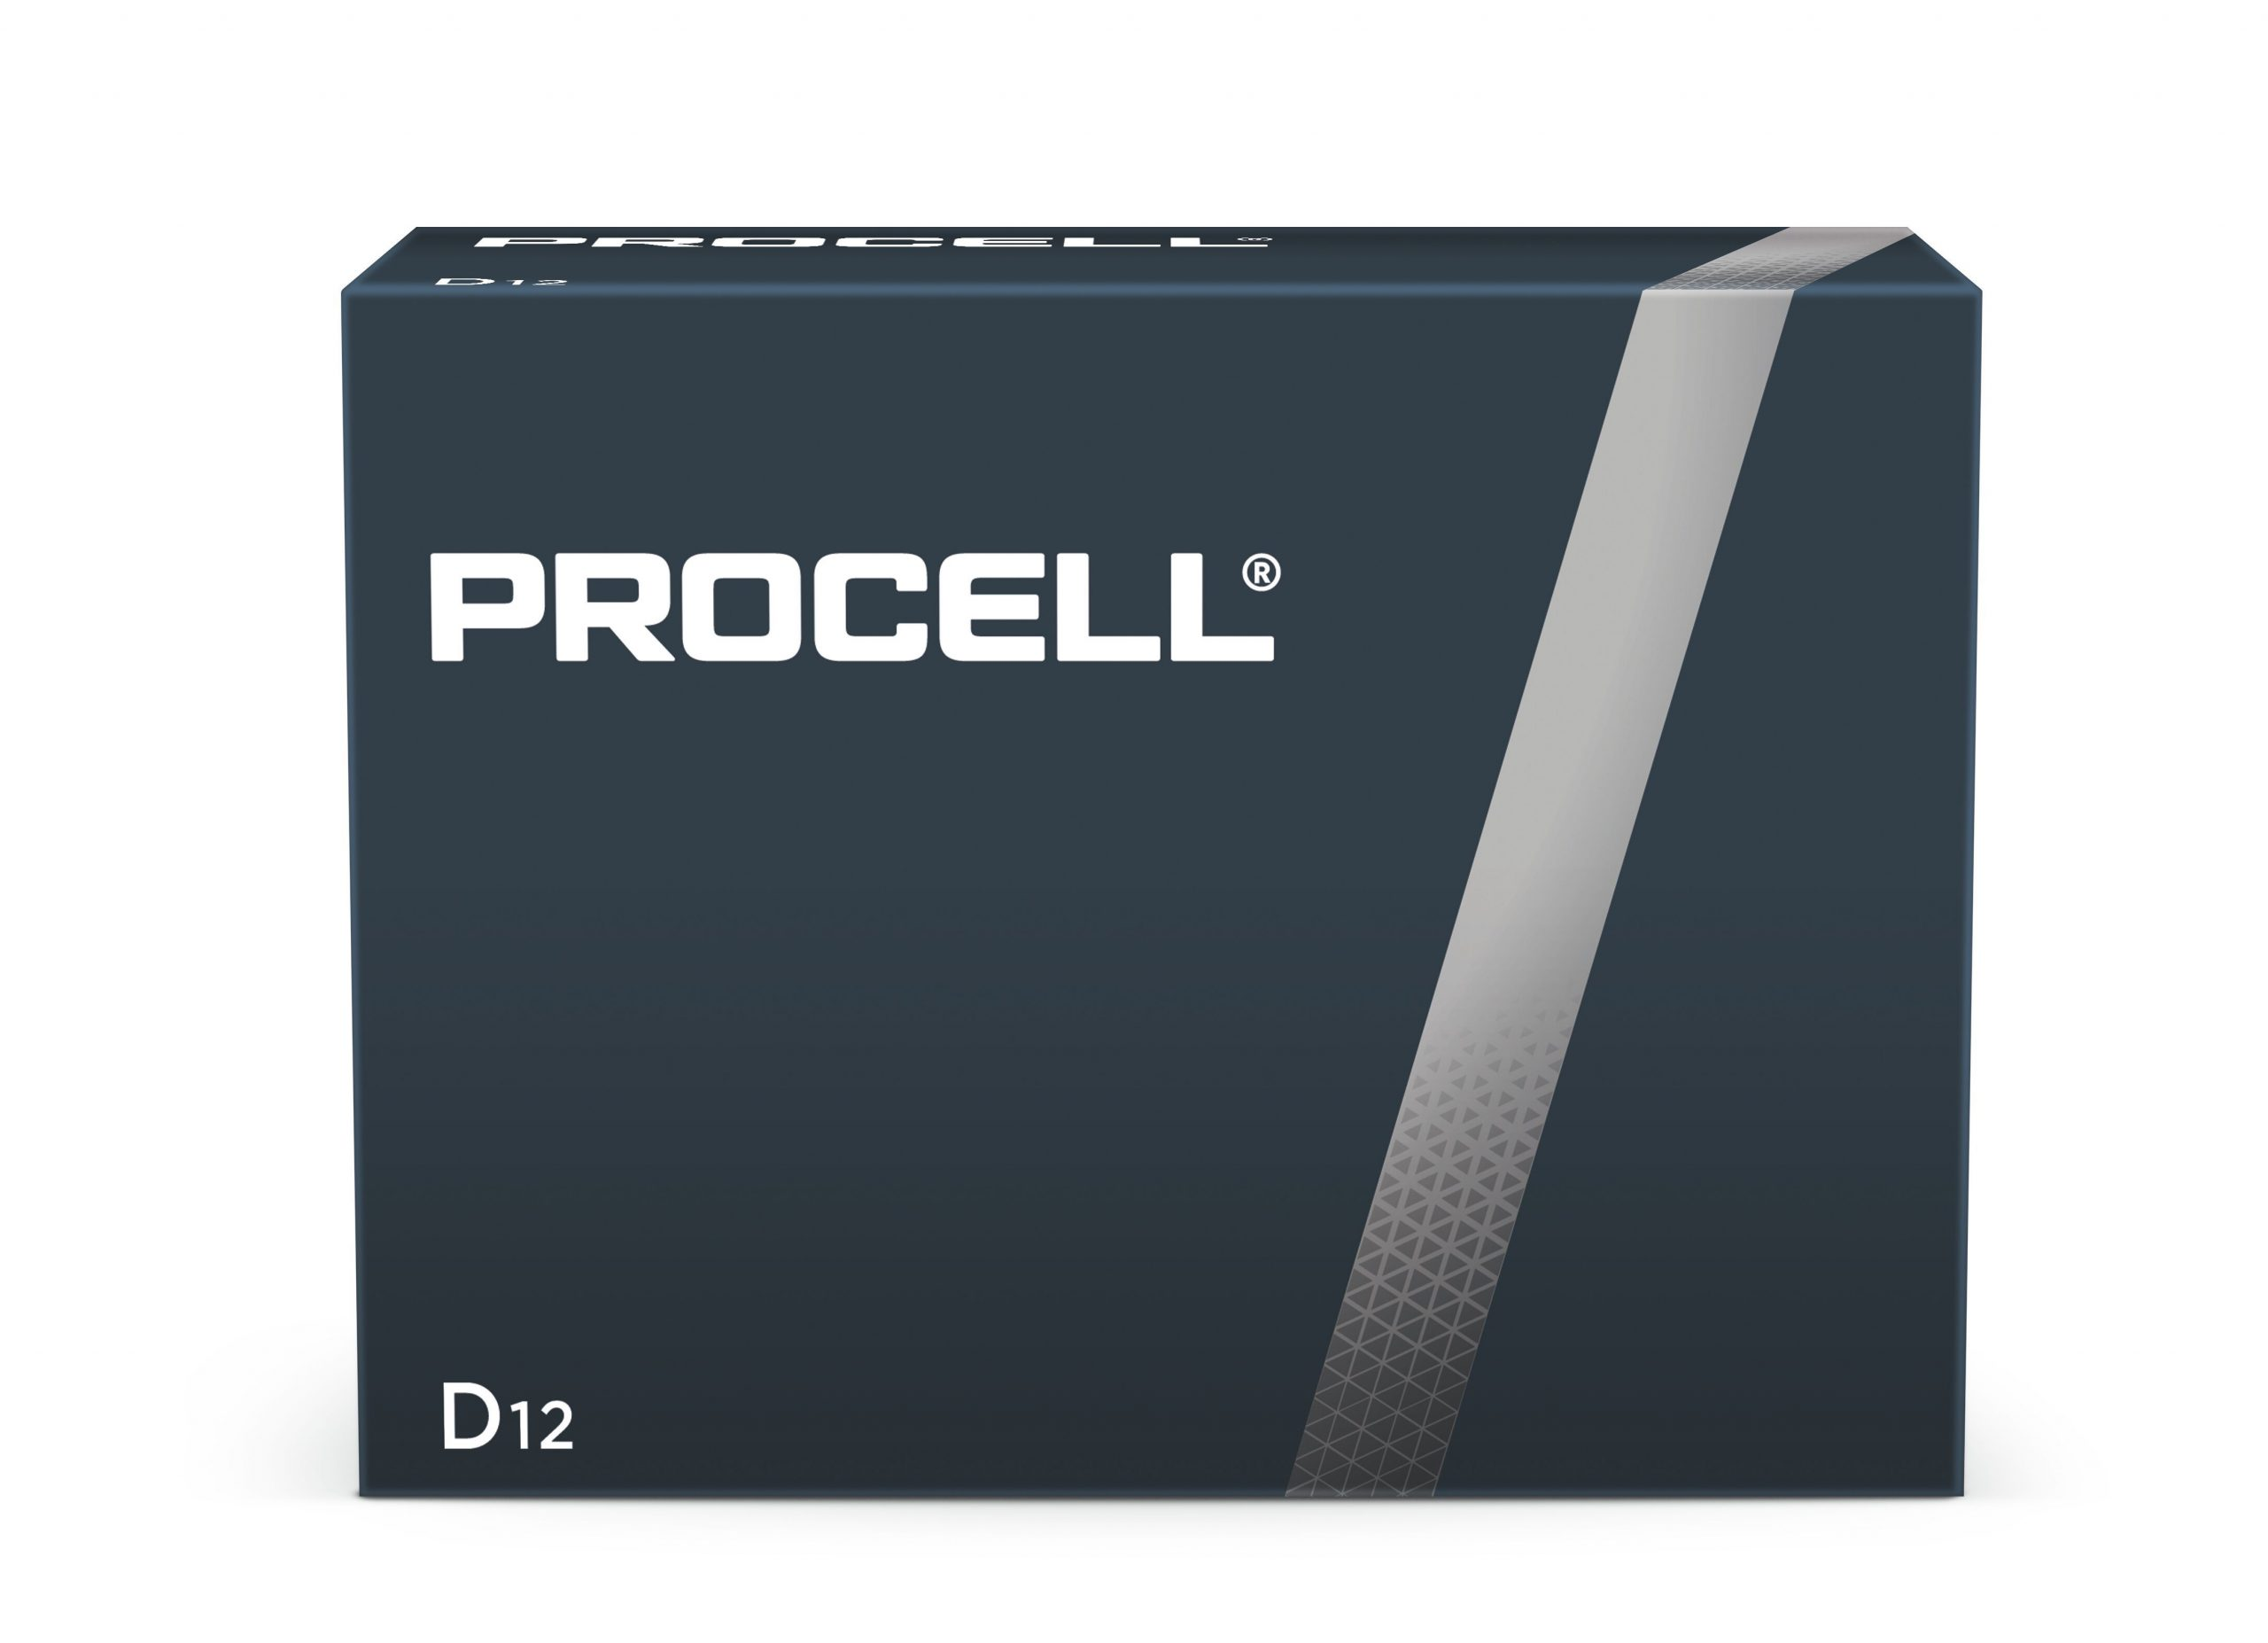 Procell_D12_Box_Front